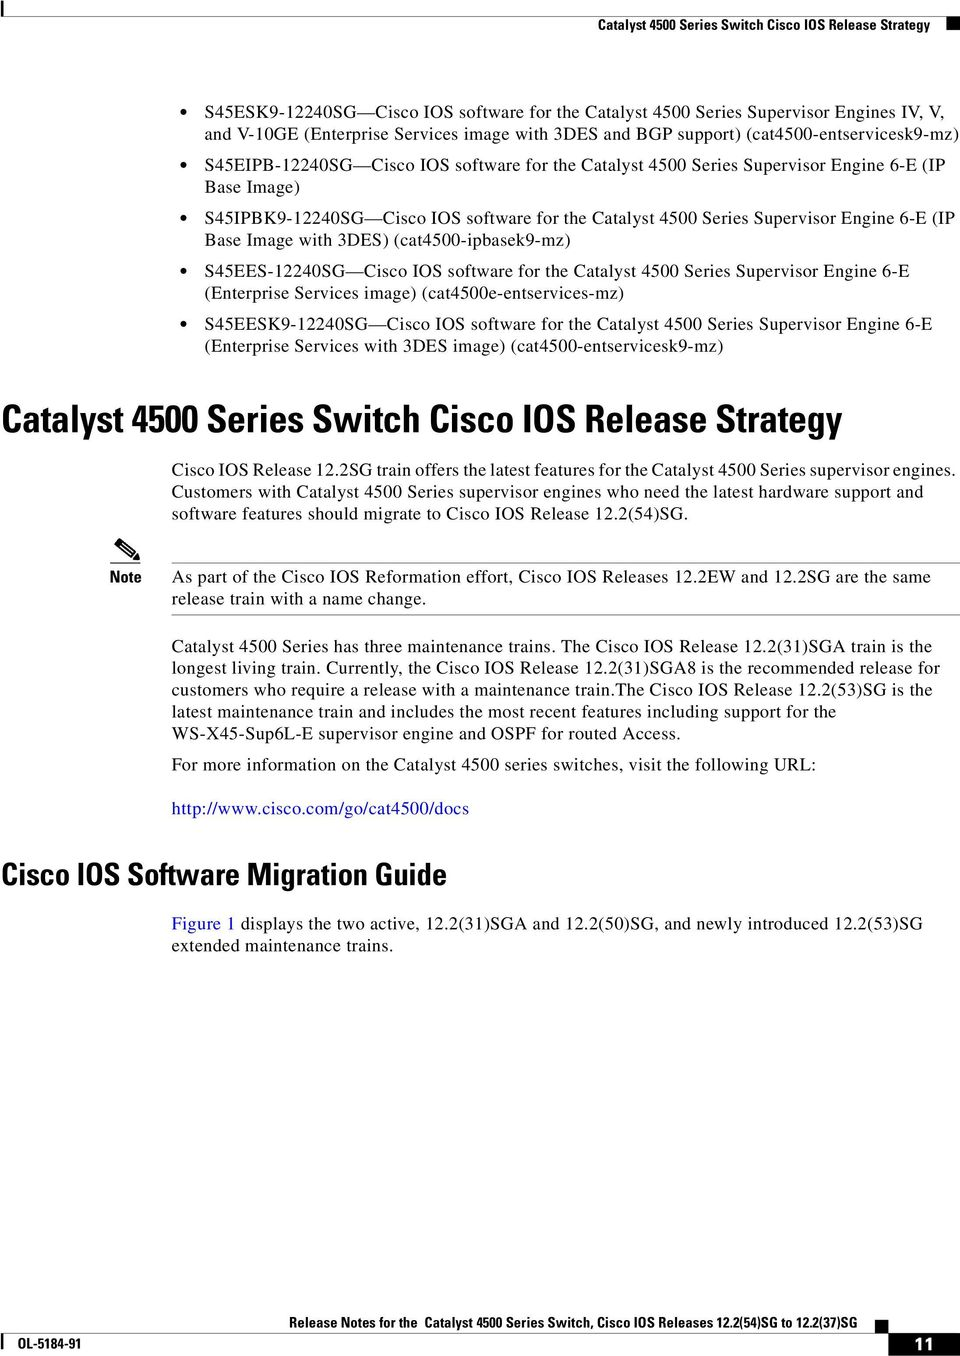 Series Supervisor Engine 6-E (IP Base Image with 3DES) (cat4500-ipbasek9-mz) S45EES-12240SG Cisco IOS software for the Catalyst 4500 Series Supervisor Engine 6-E (Enterprise Services image)